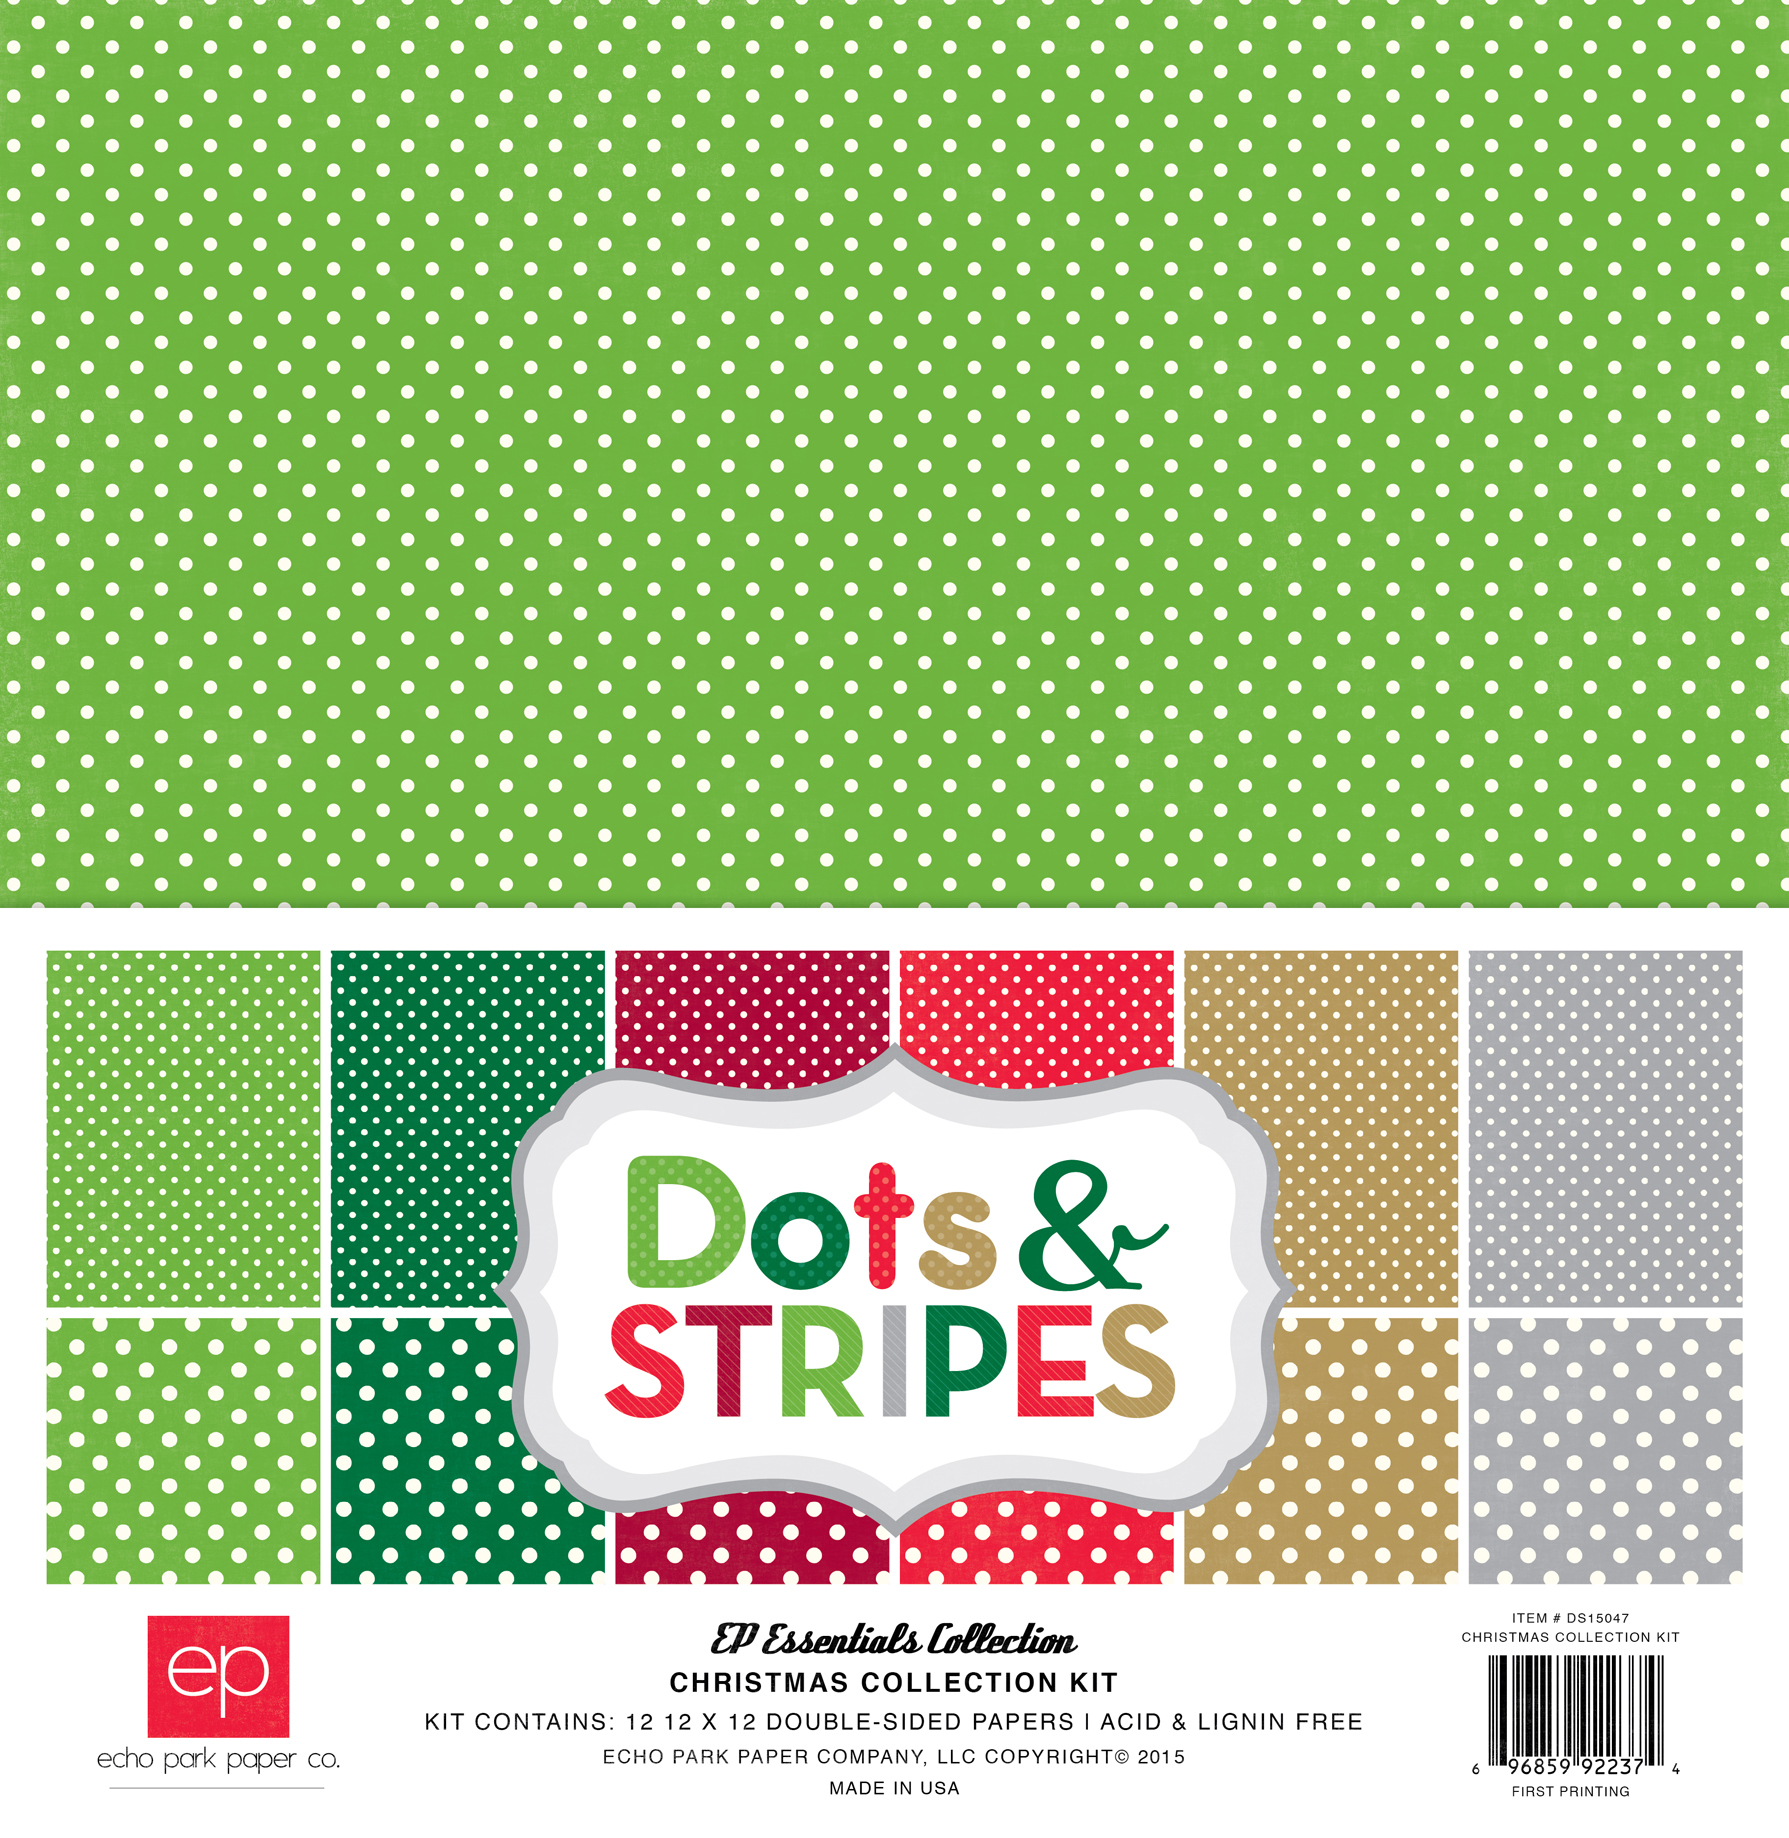 Dots & Stripes Christmas